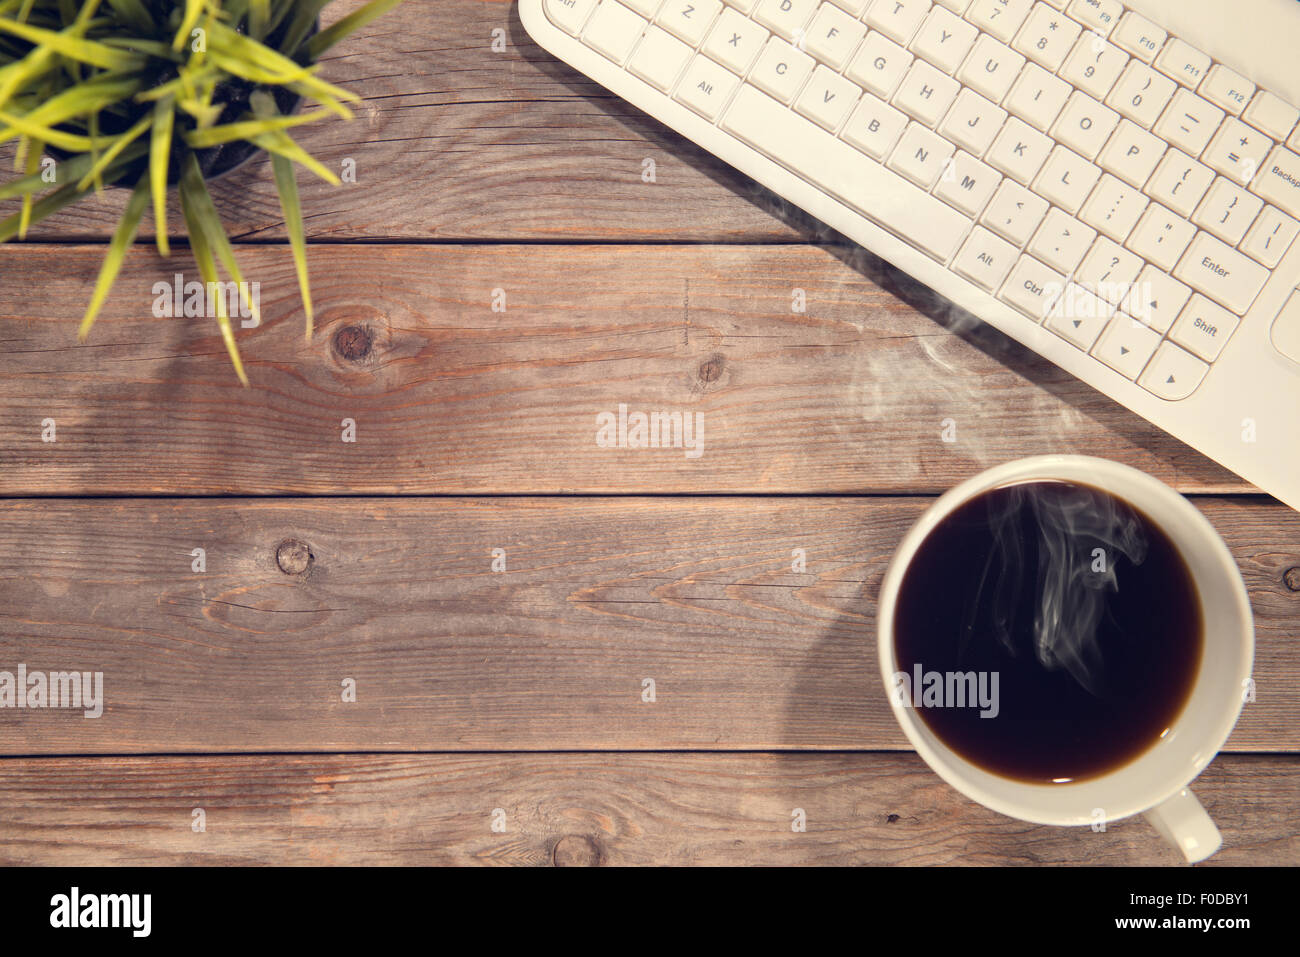 Coffee Desktop Keyboard Mug Collection 12 Wallpapers